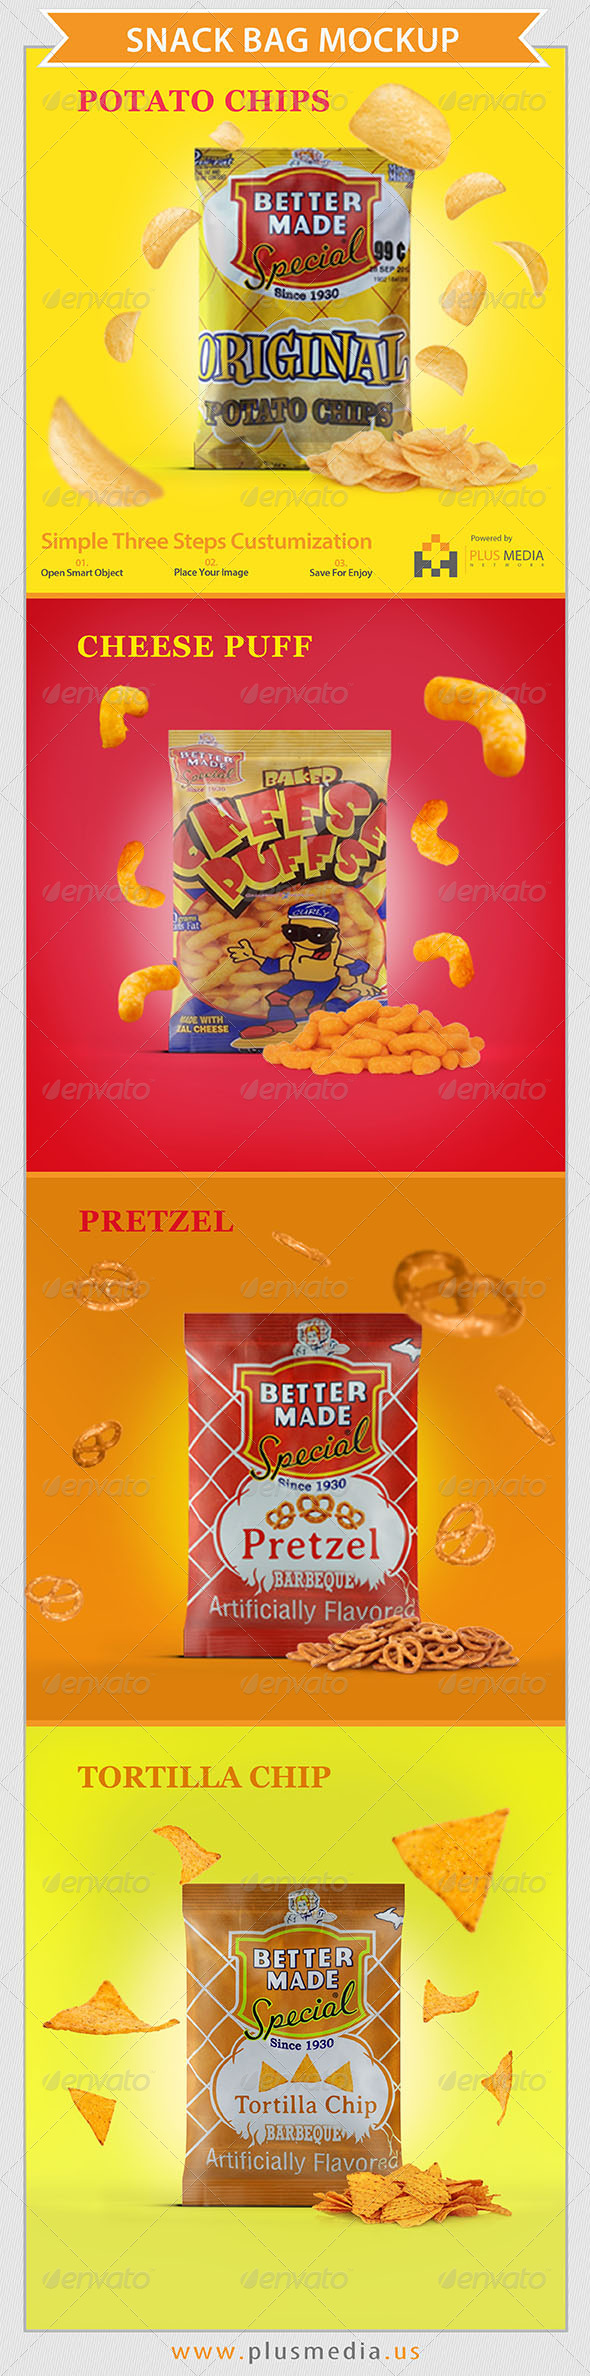 GraphicRiver Snack Bag Mockup 6619716